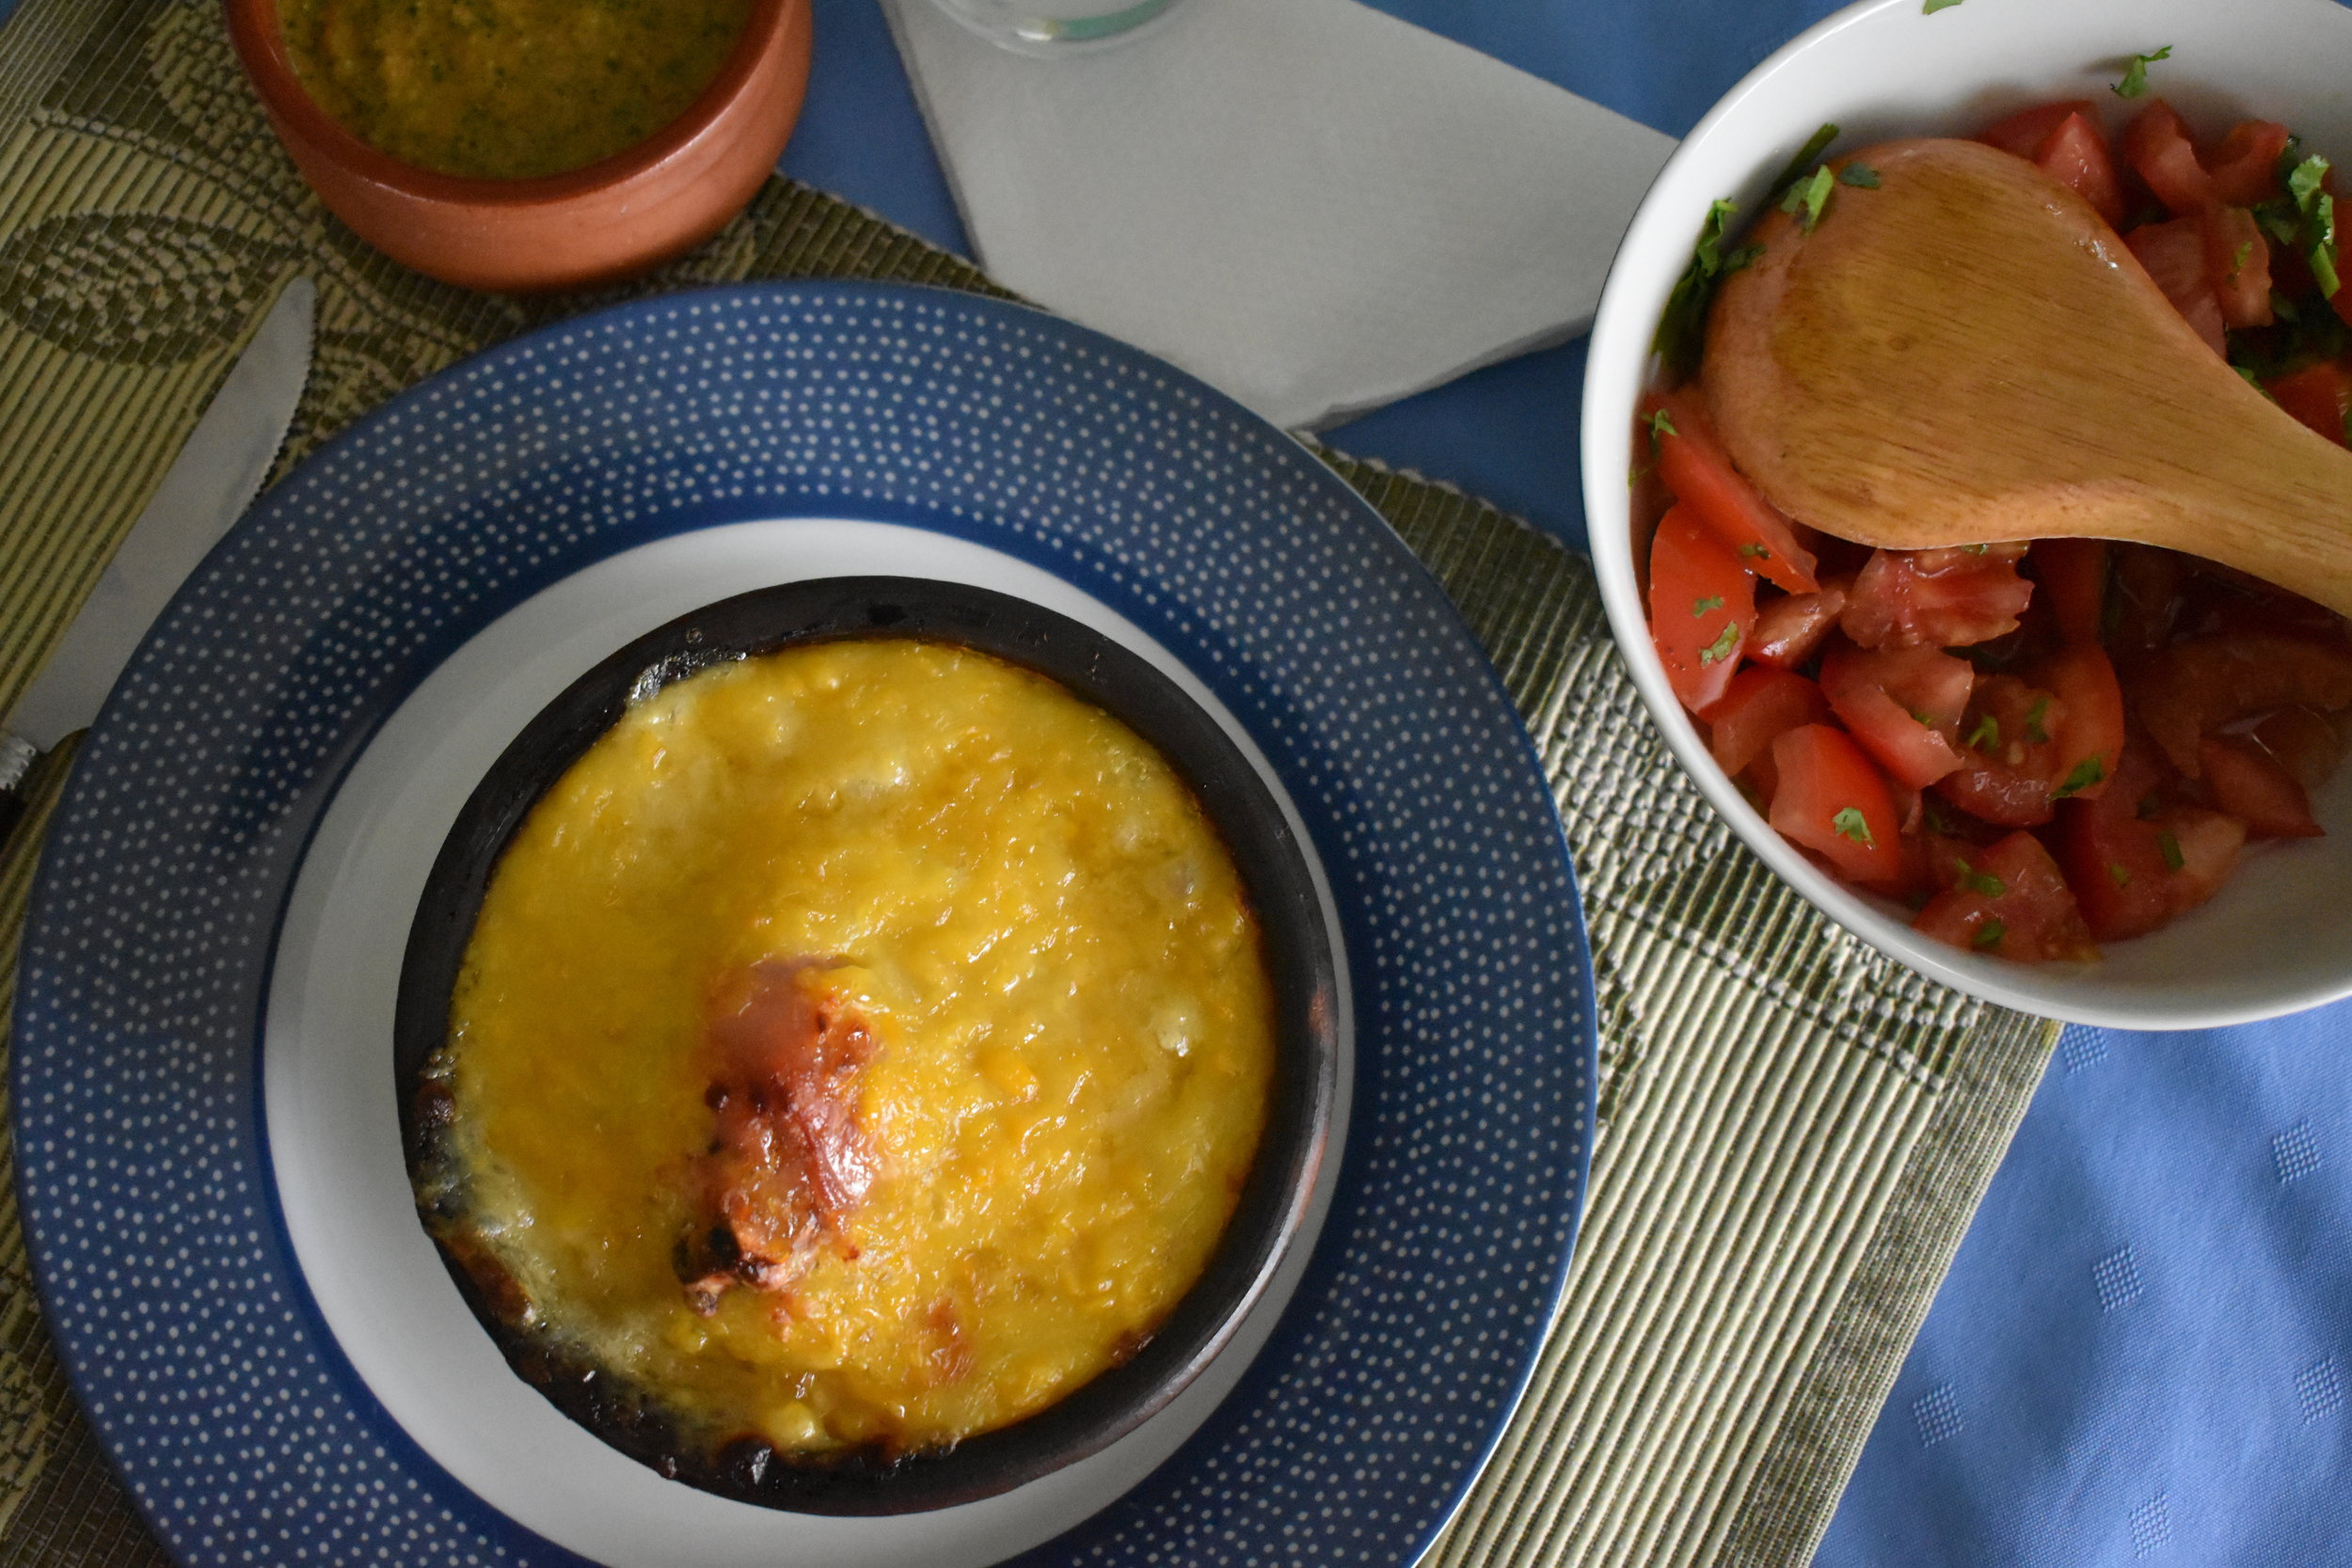 Pictured above, Pastel de Choclo and a side dish of tomato salad